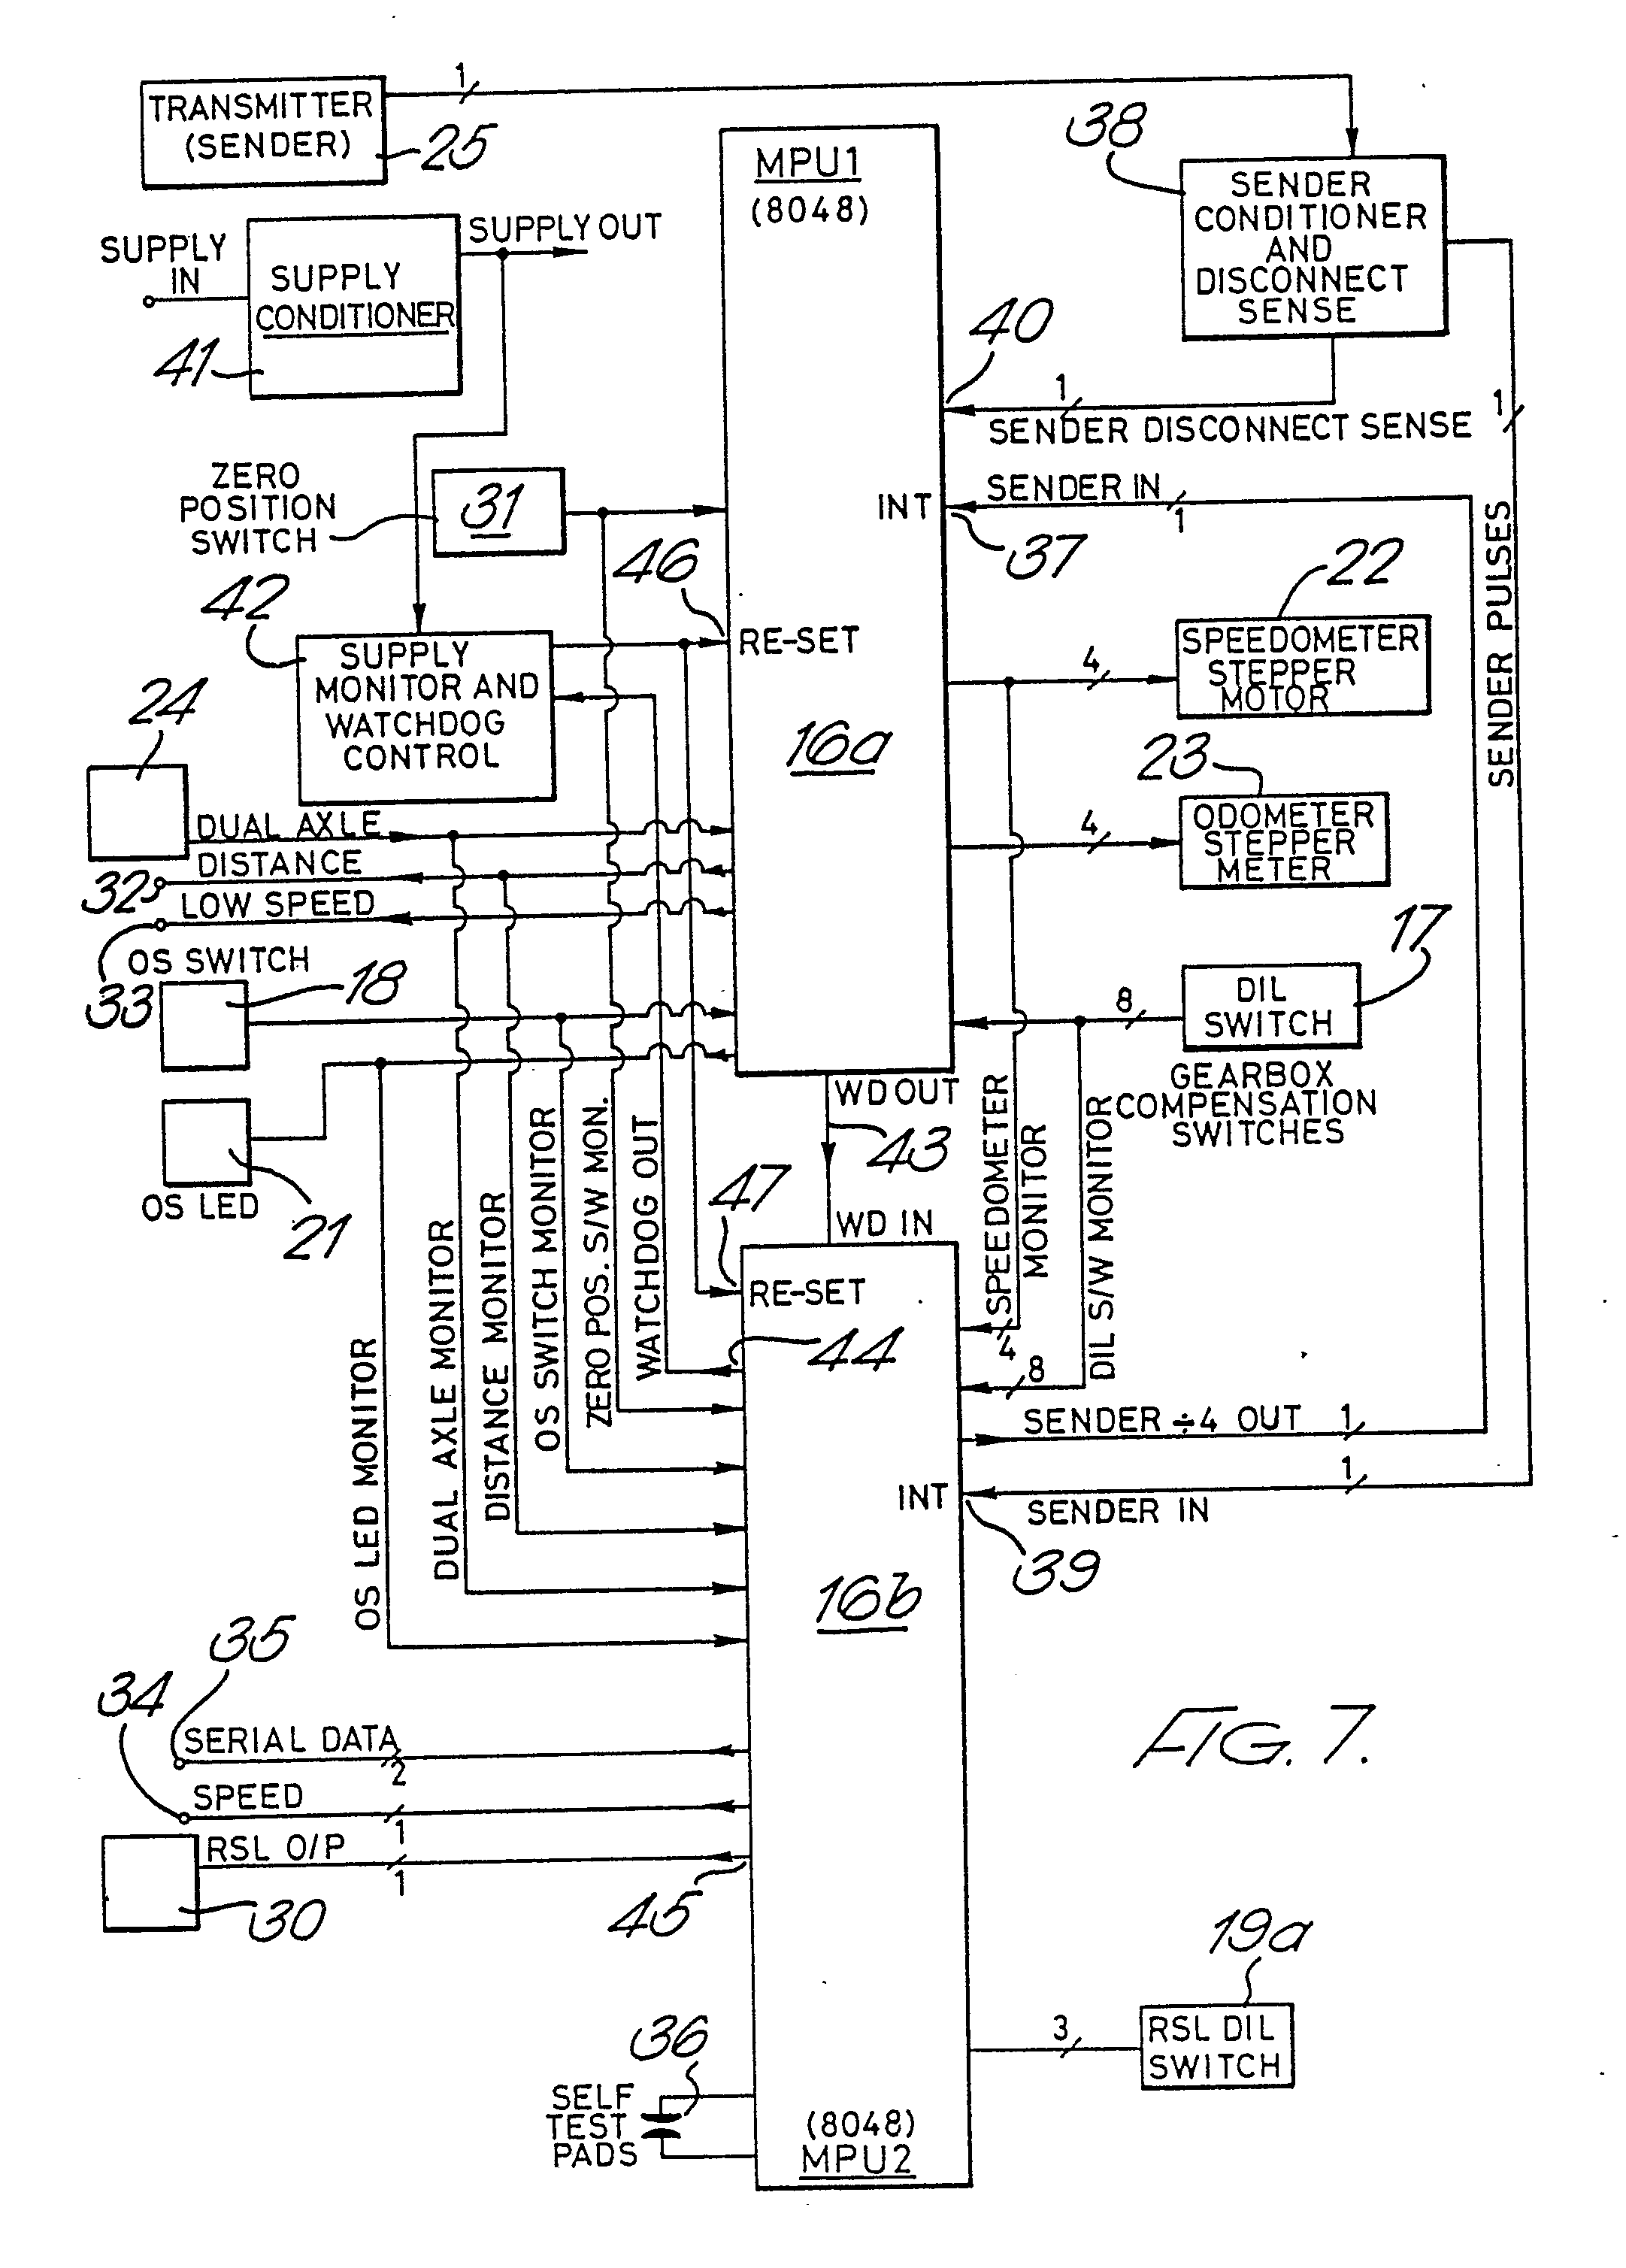 Vdo Tach Wiring Electric 24 Diagram Images Tachometer Imgf0005resize6652c928 Senders Diagrams Gauges